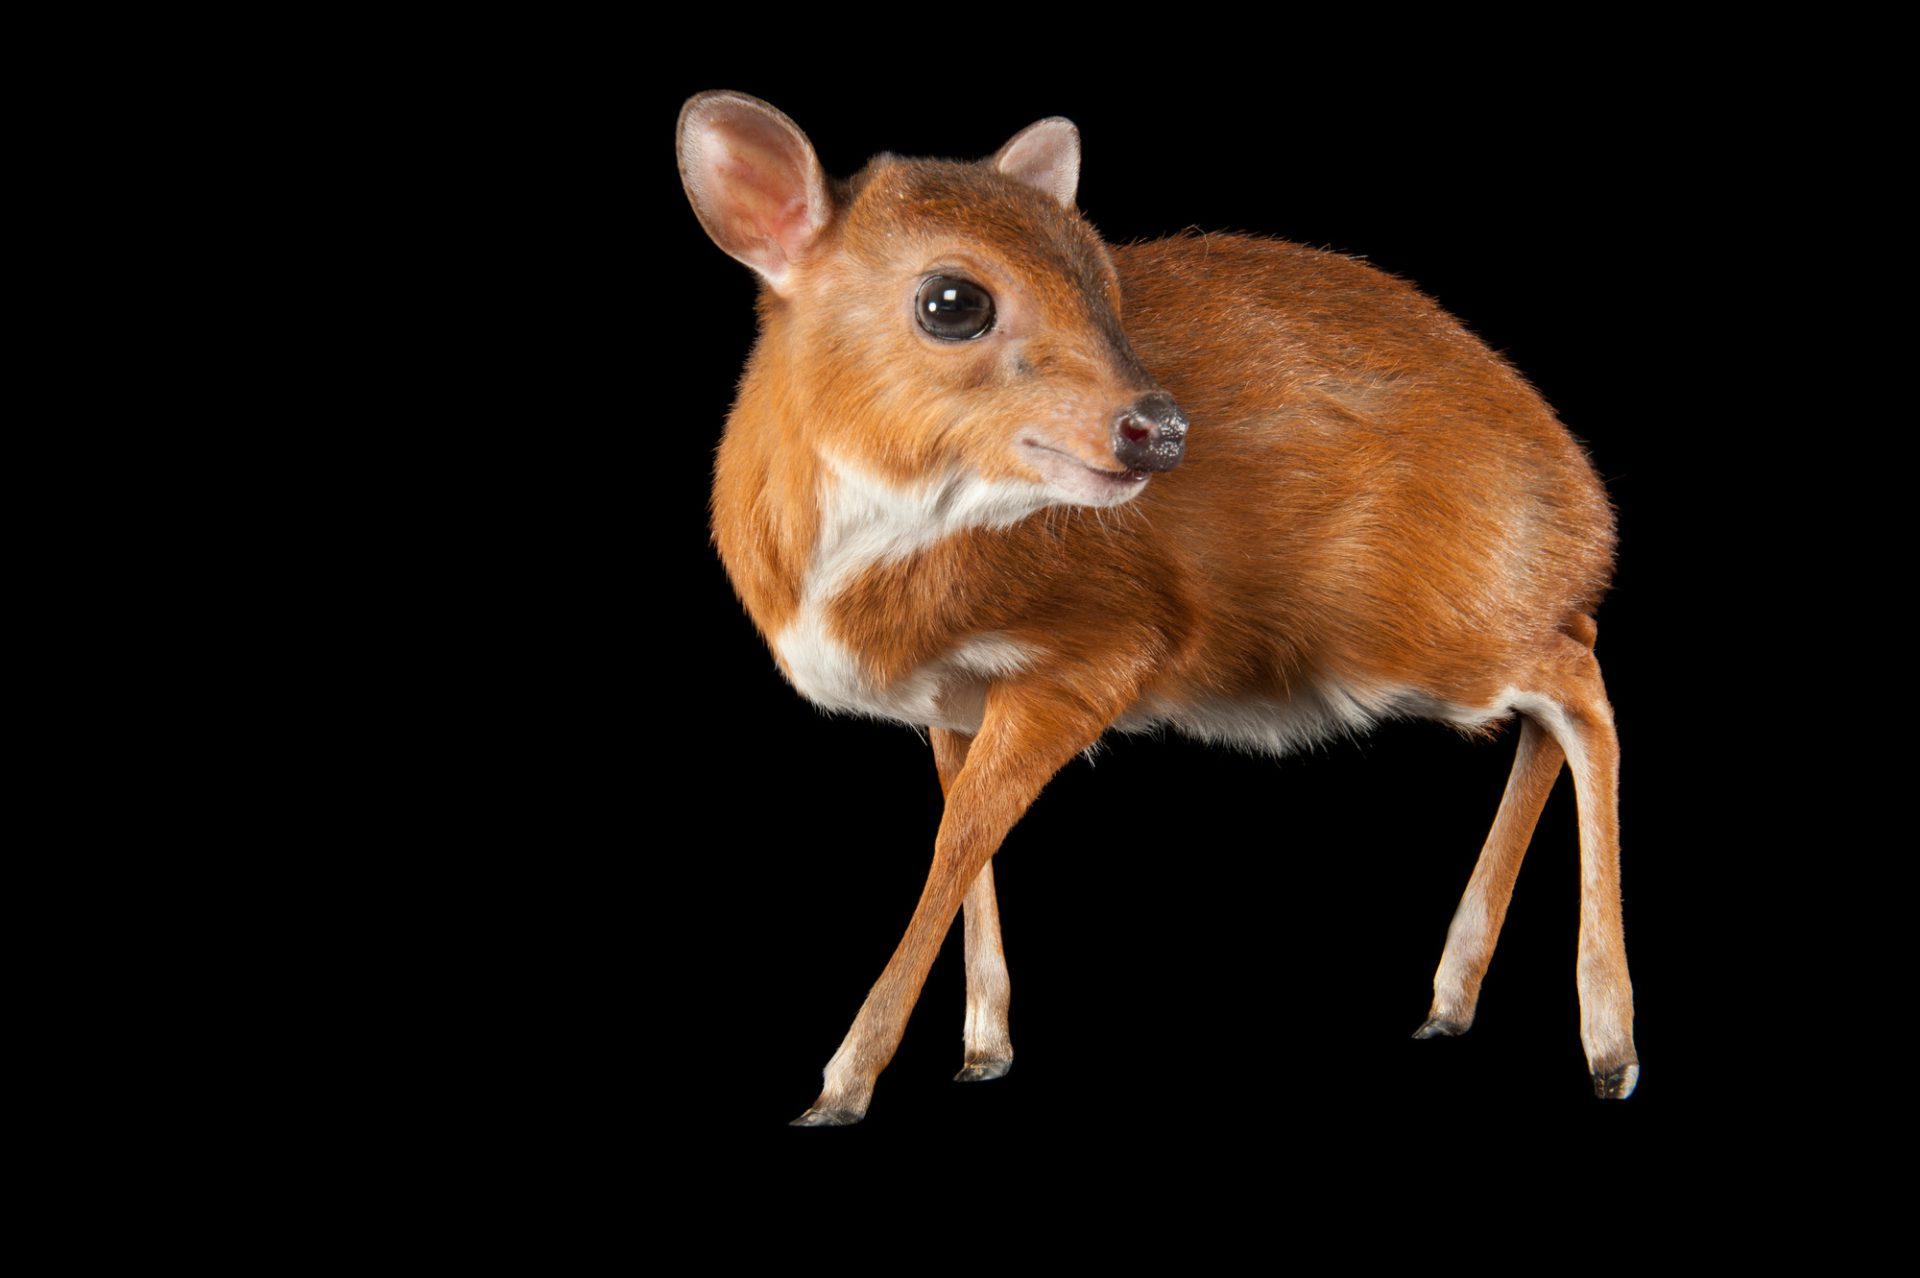 Photo: Royal Antelope (Neotraus pygmaeus). This species weighs 9-10 pounds making it the smallest of all antelopes.